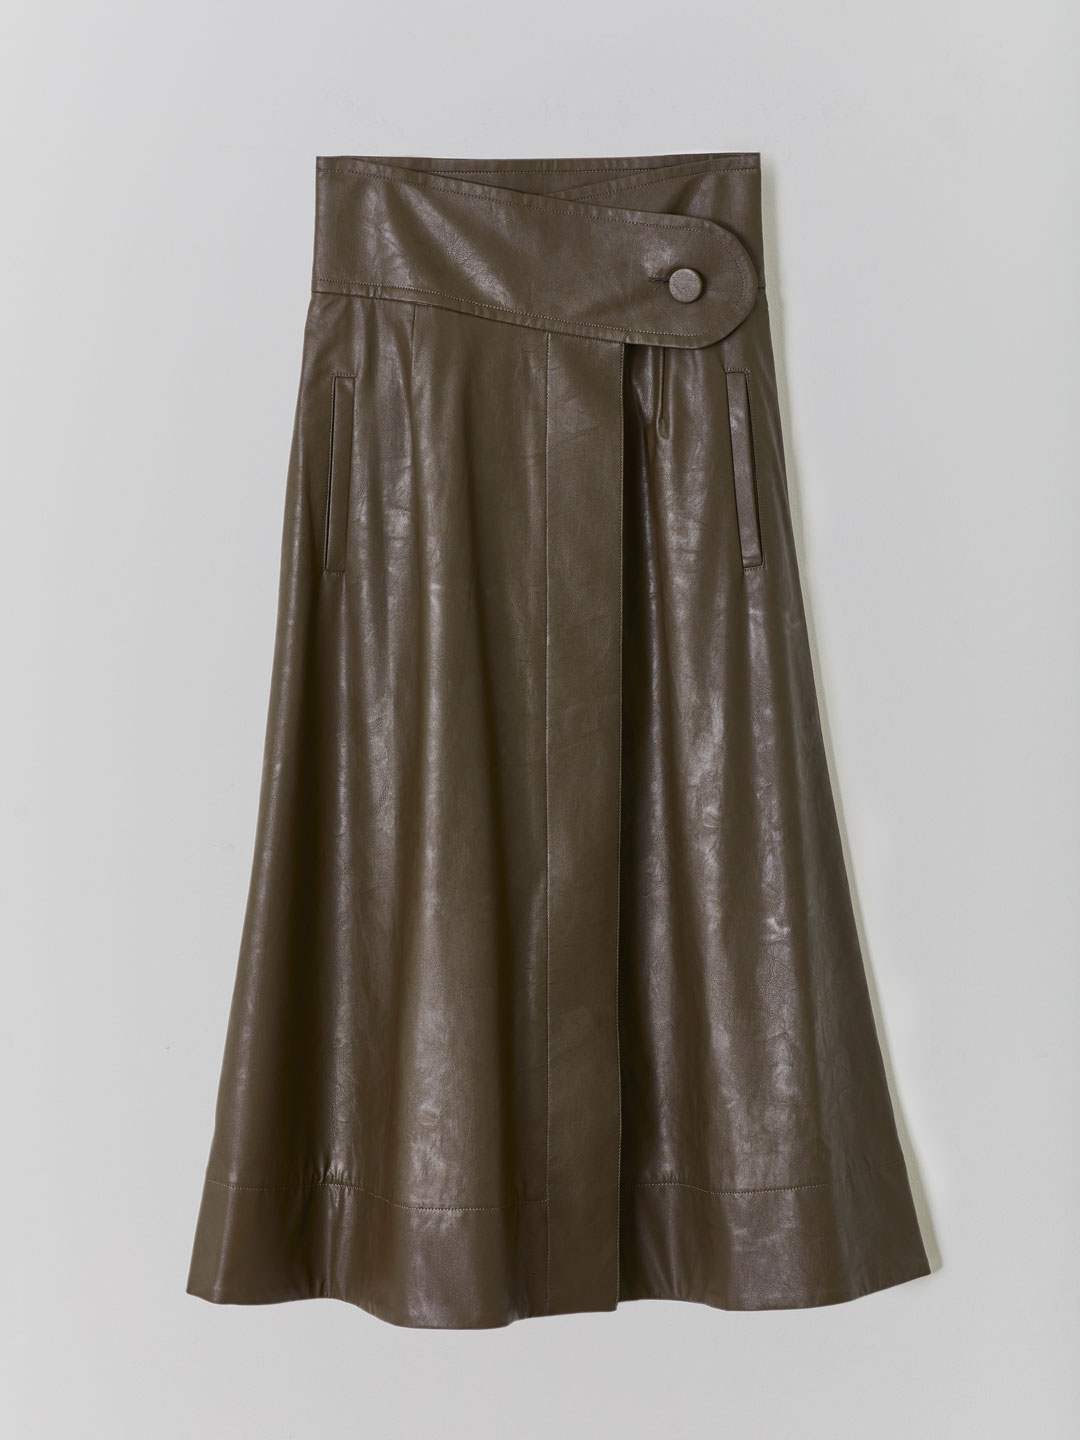 High Waisted Skirt  - Brown